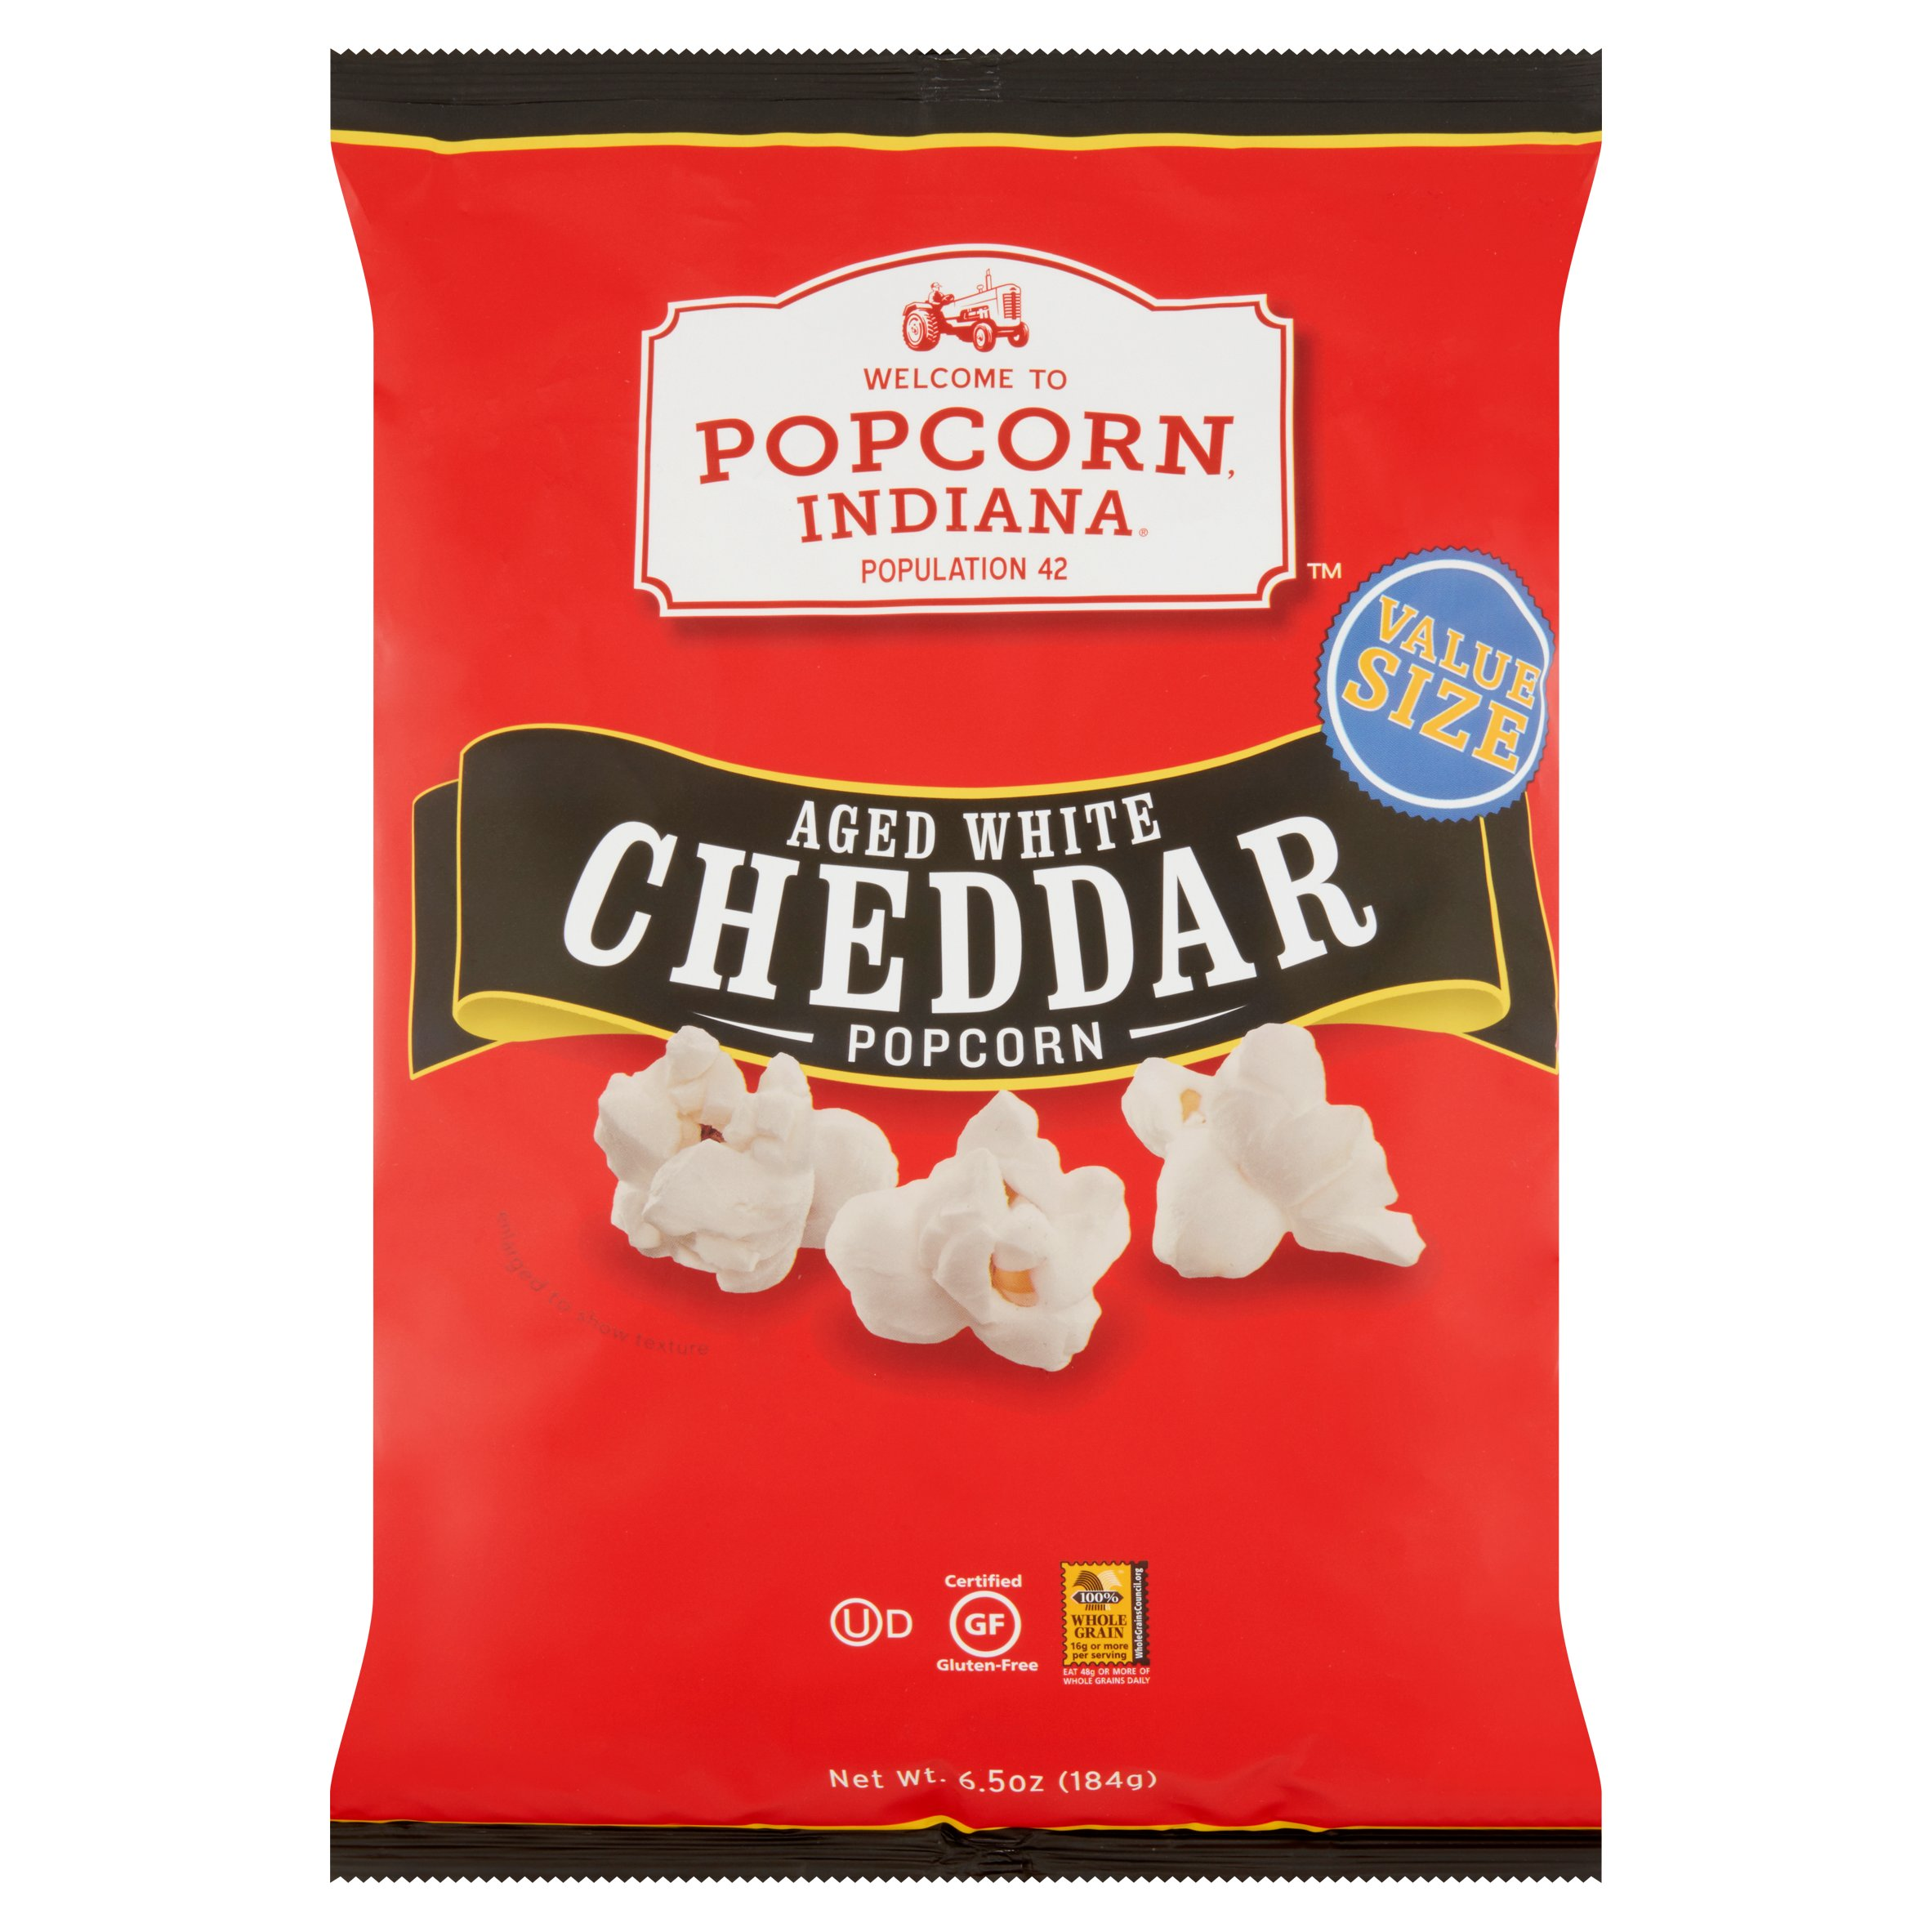 Popcorn Indiana Value Size Aged White Cheddar Popcorn, 6.5 oz